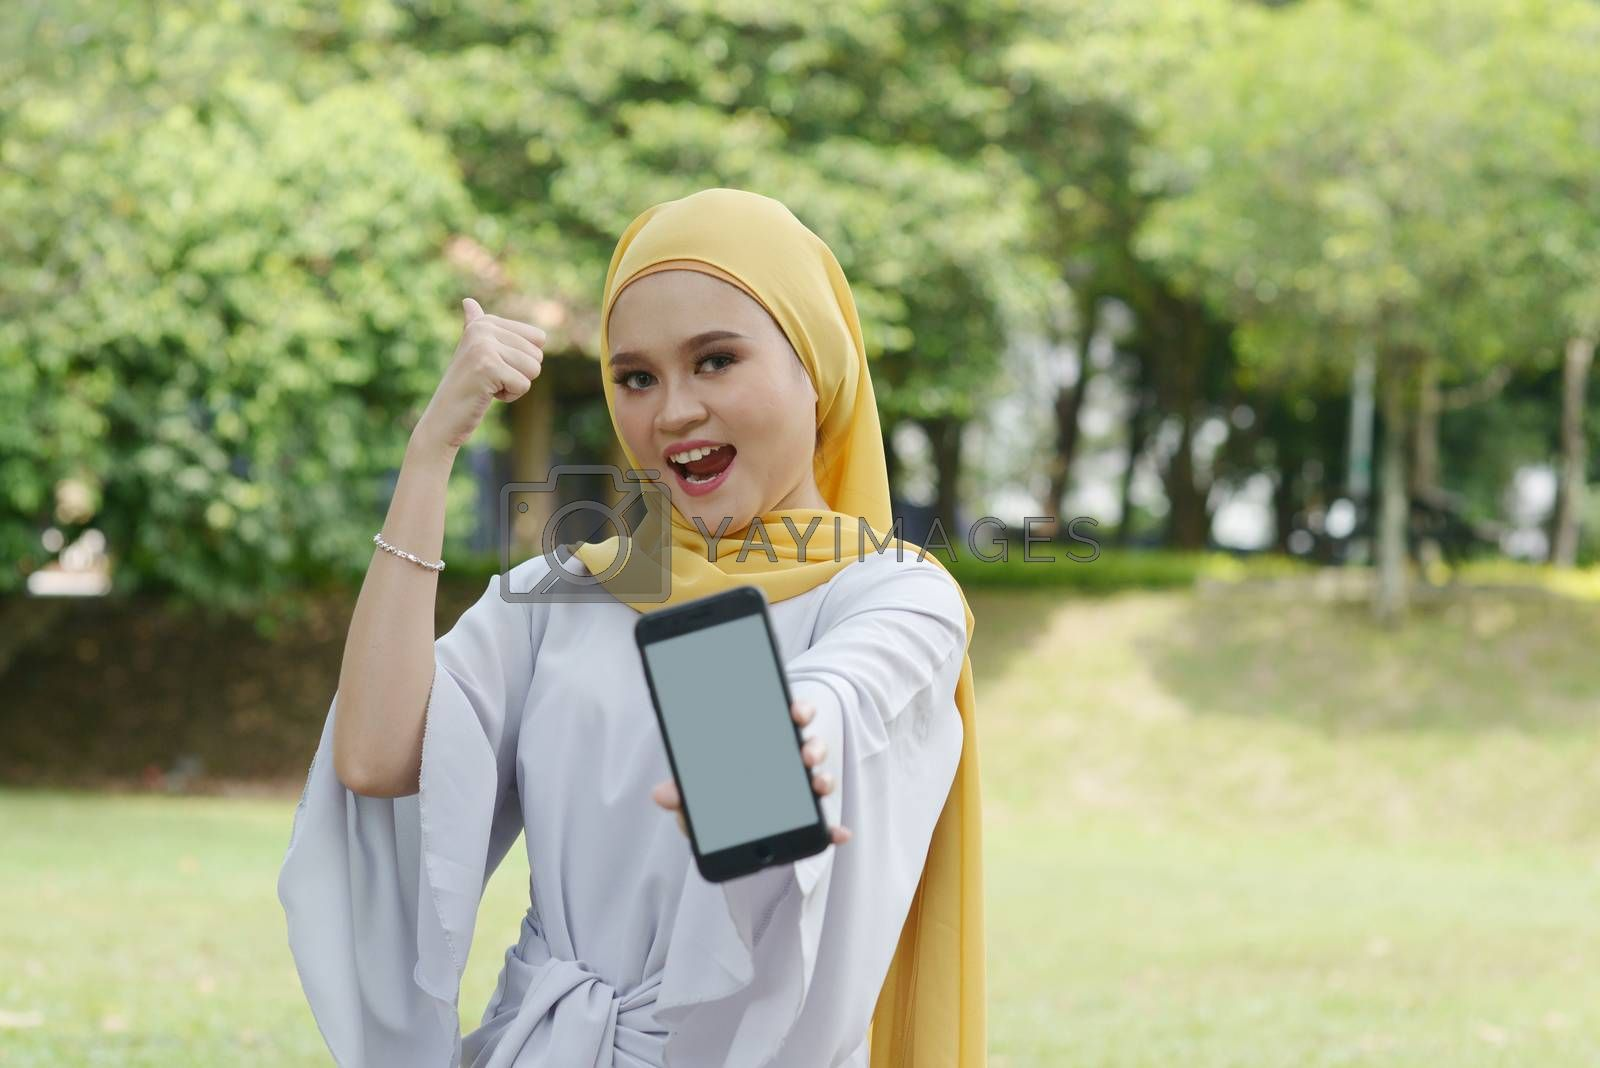 Portrait of cheerful Muslim girl using smartphone and thumb up, smiling at outdoor.